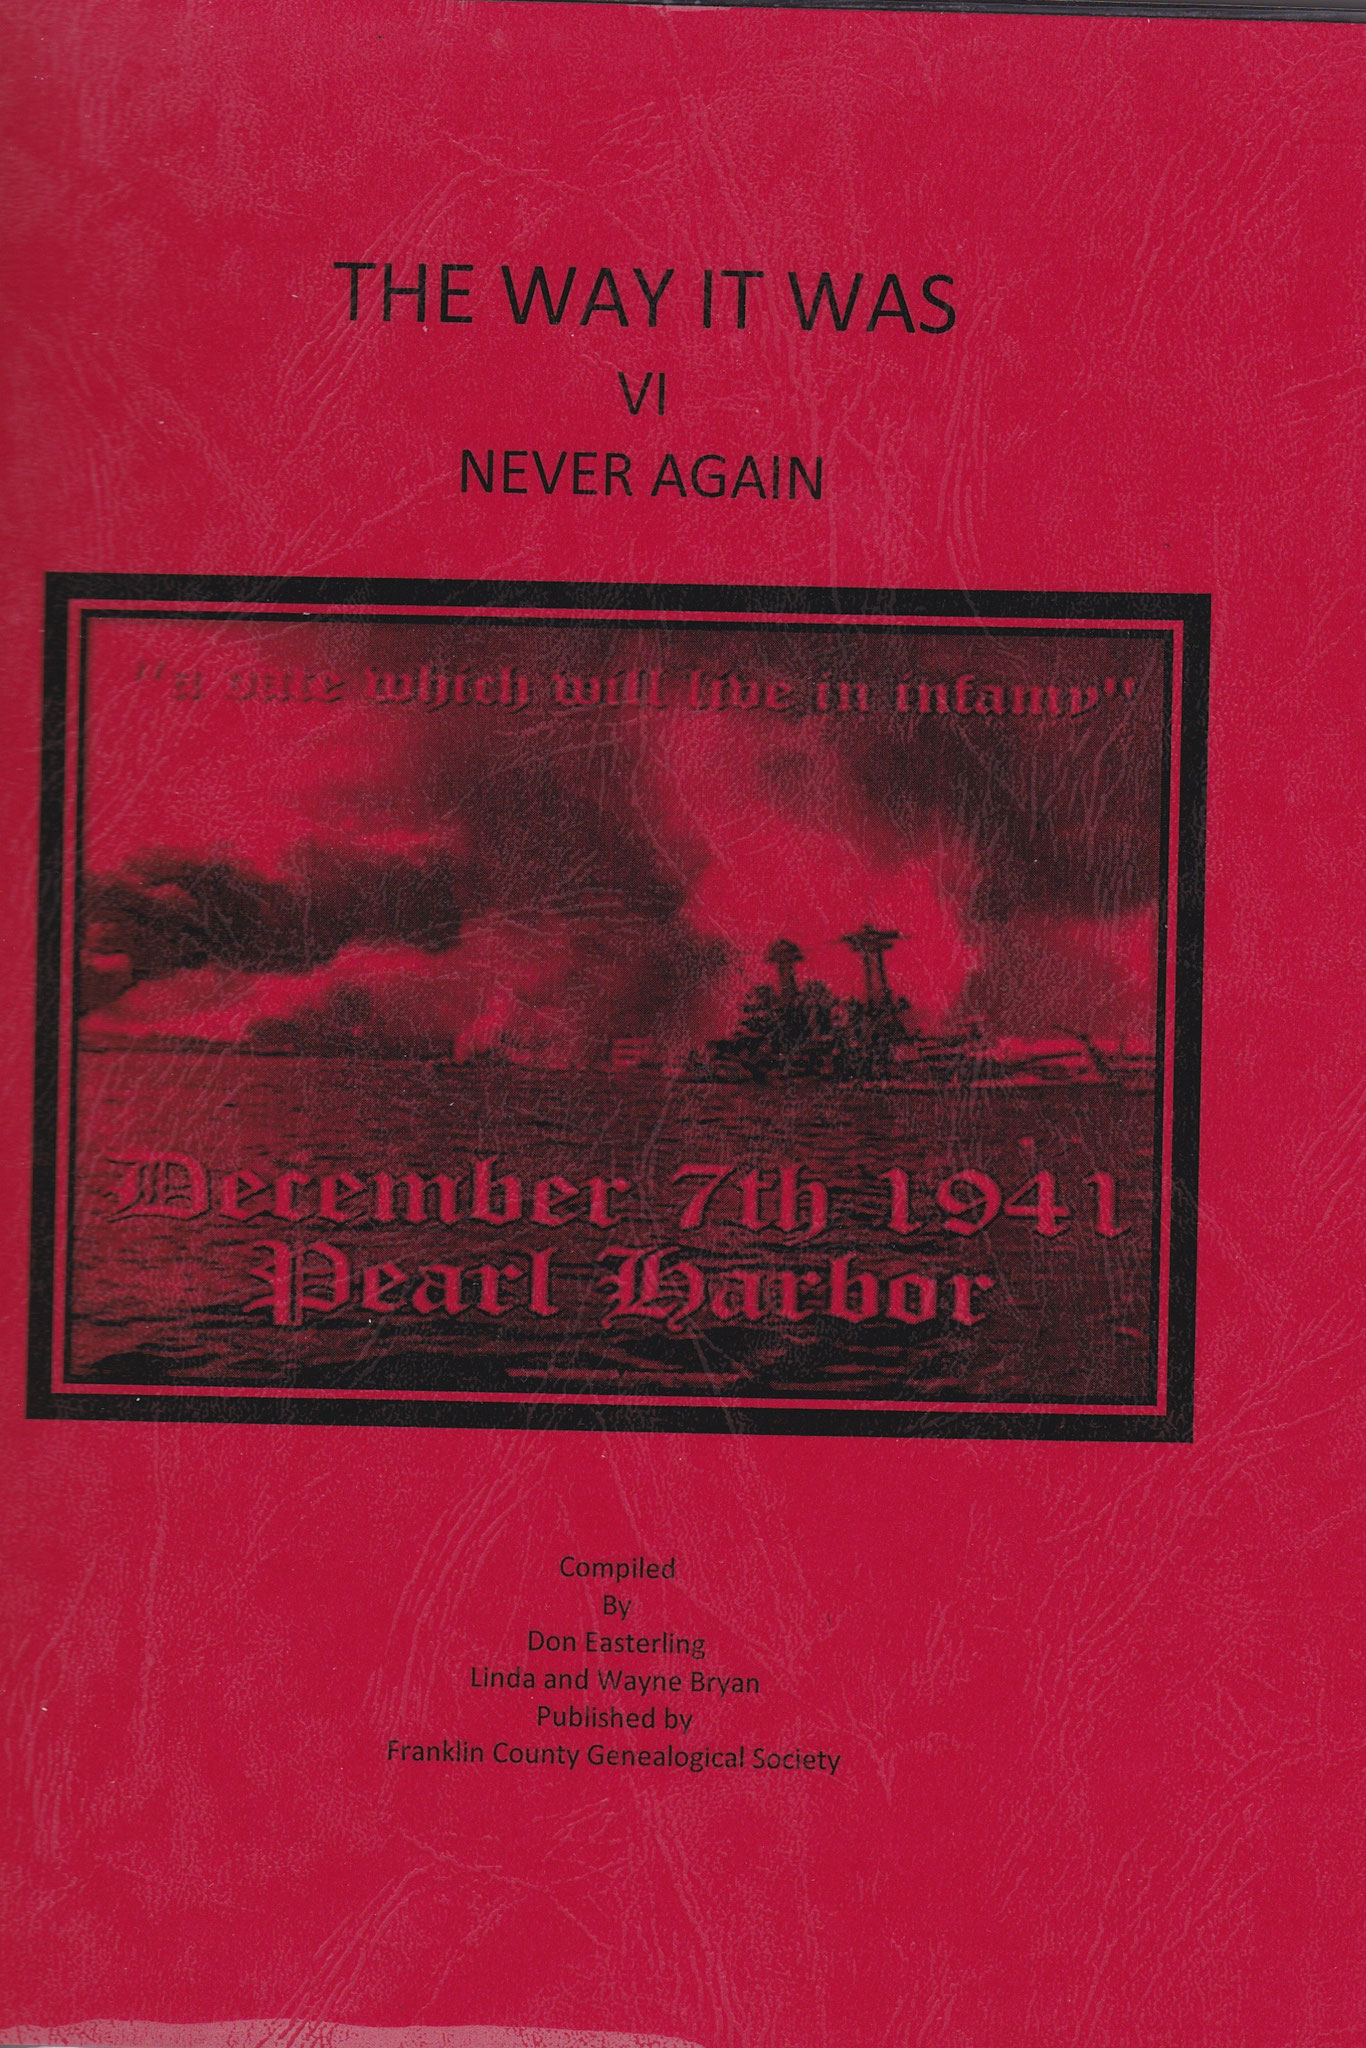 Cover of The Way It Was, VI: Never Again (available individually or as part of The Way It Was set)